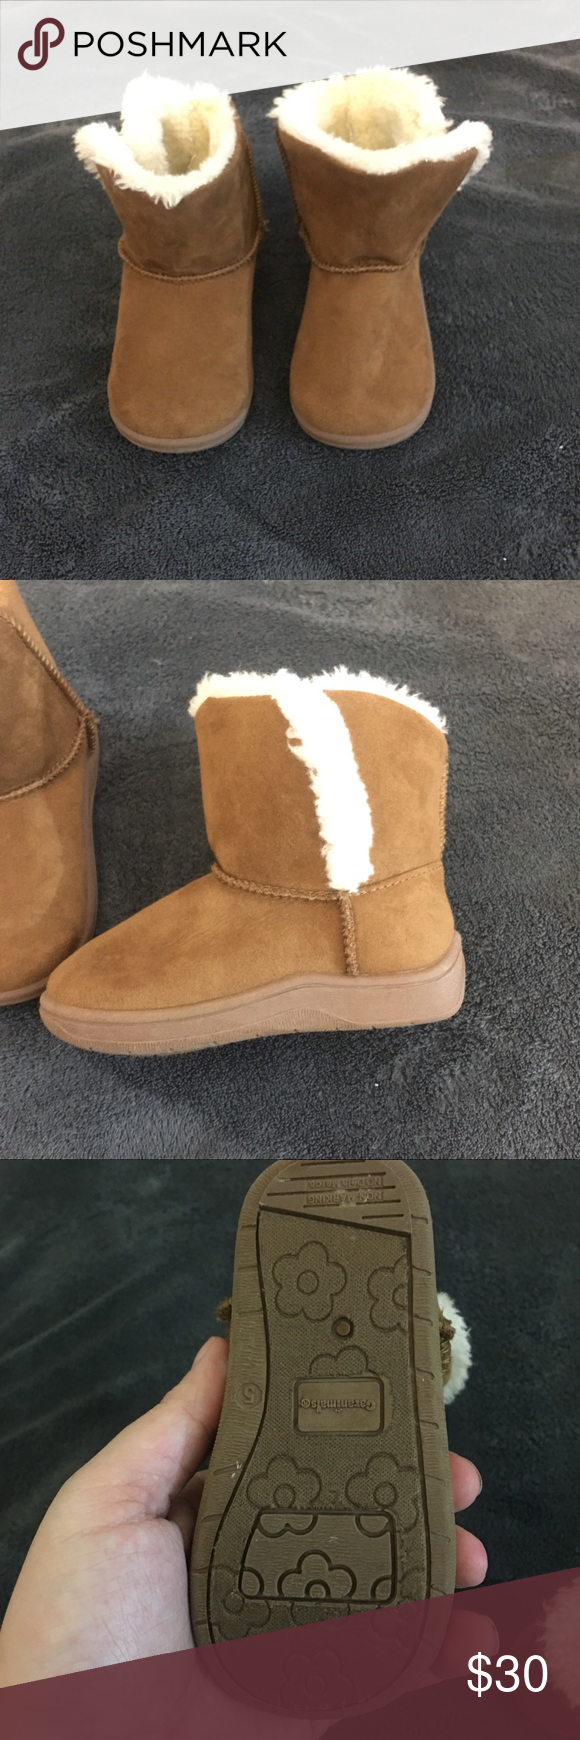 "504985bc6e2 Winter boots never used but I not have tags ""Fake uggs"" never worn ..."